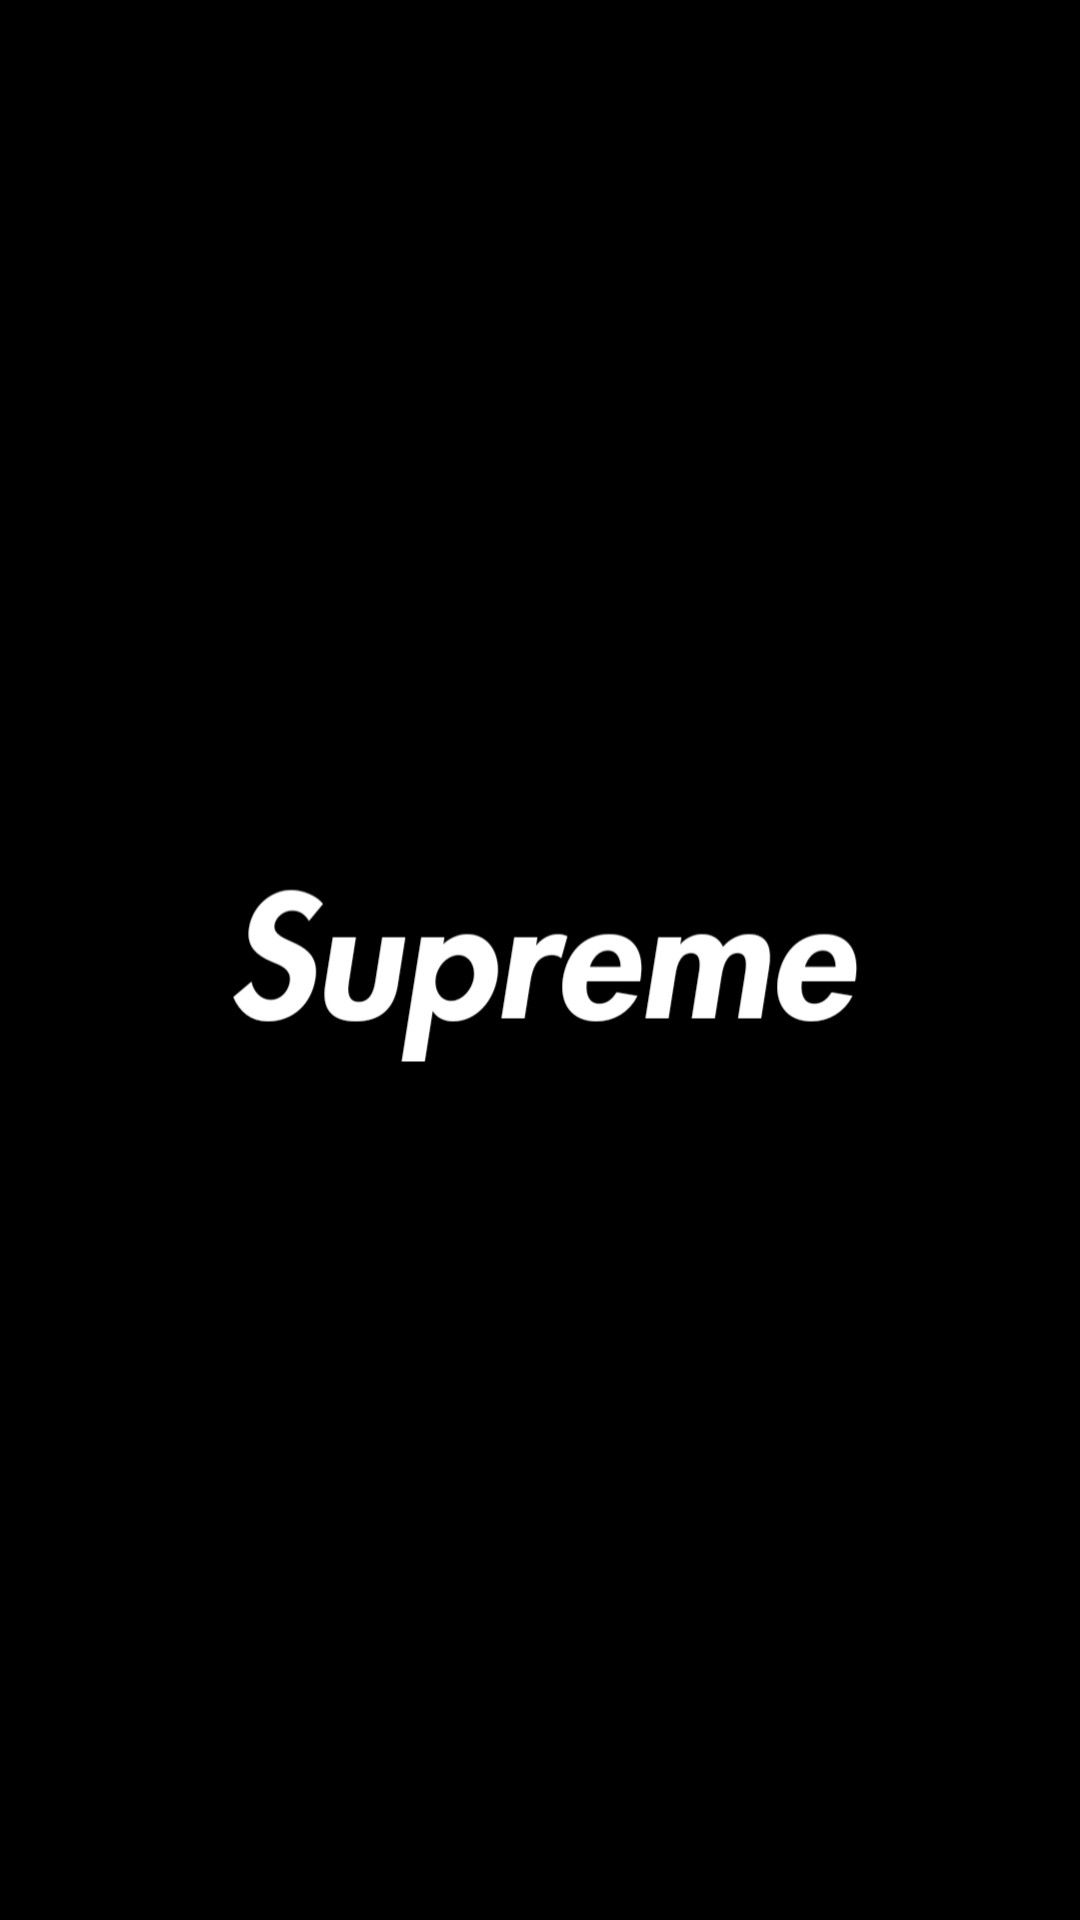 Supreme logo wallpaper Supreme iphone wallpaper, Supreme